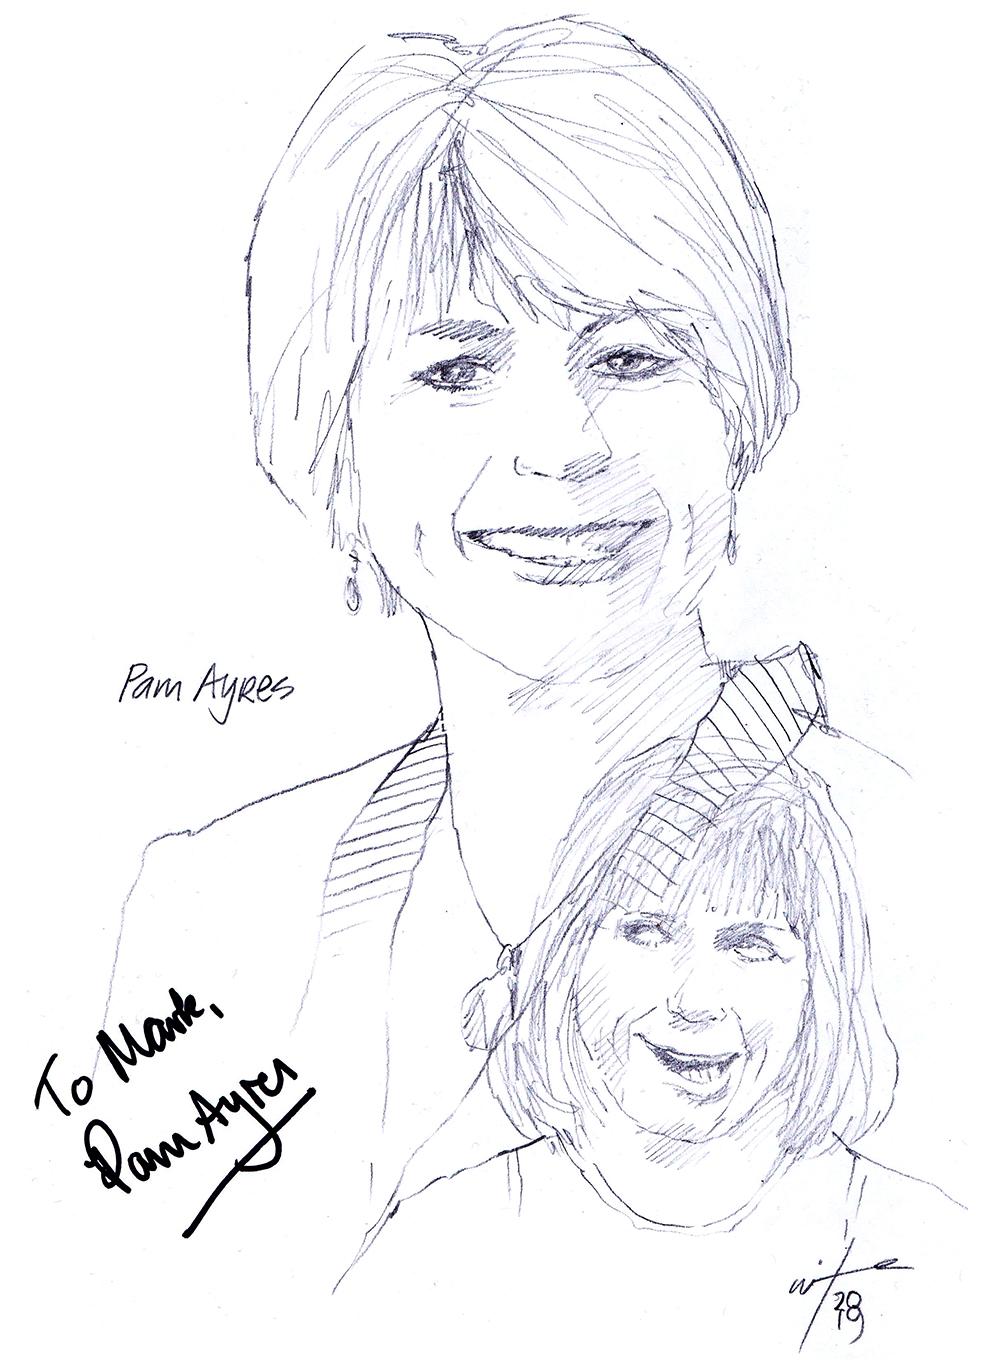 Autographed drawing of poet Pam Ayres